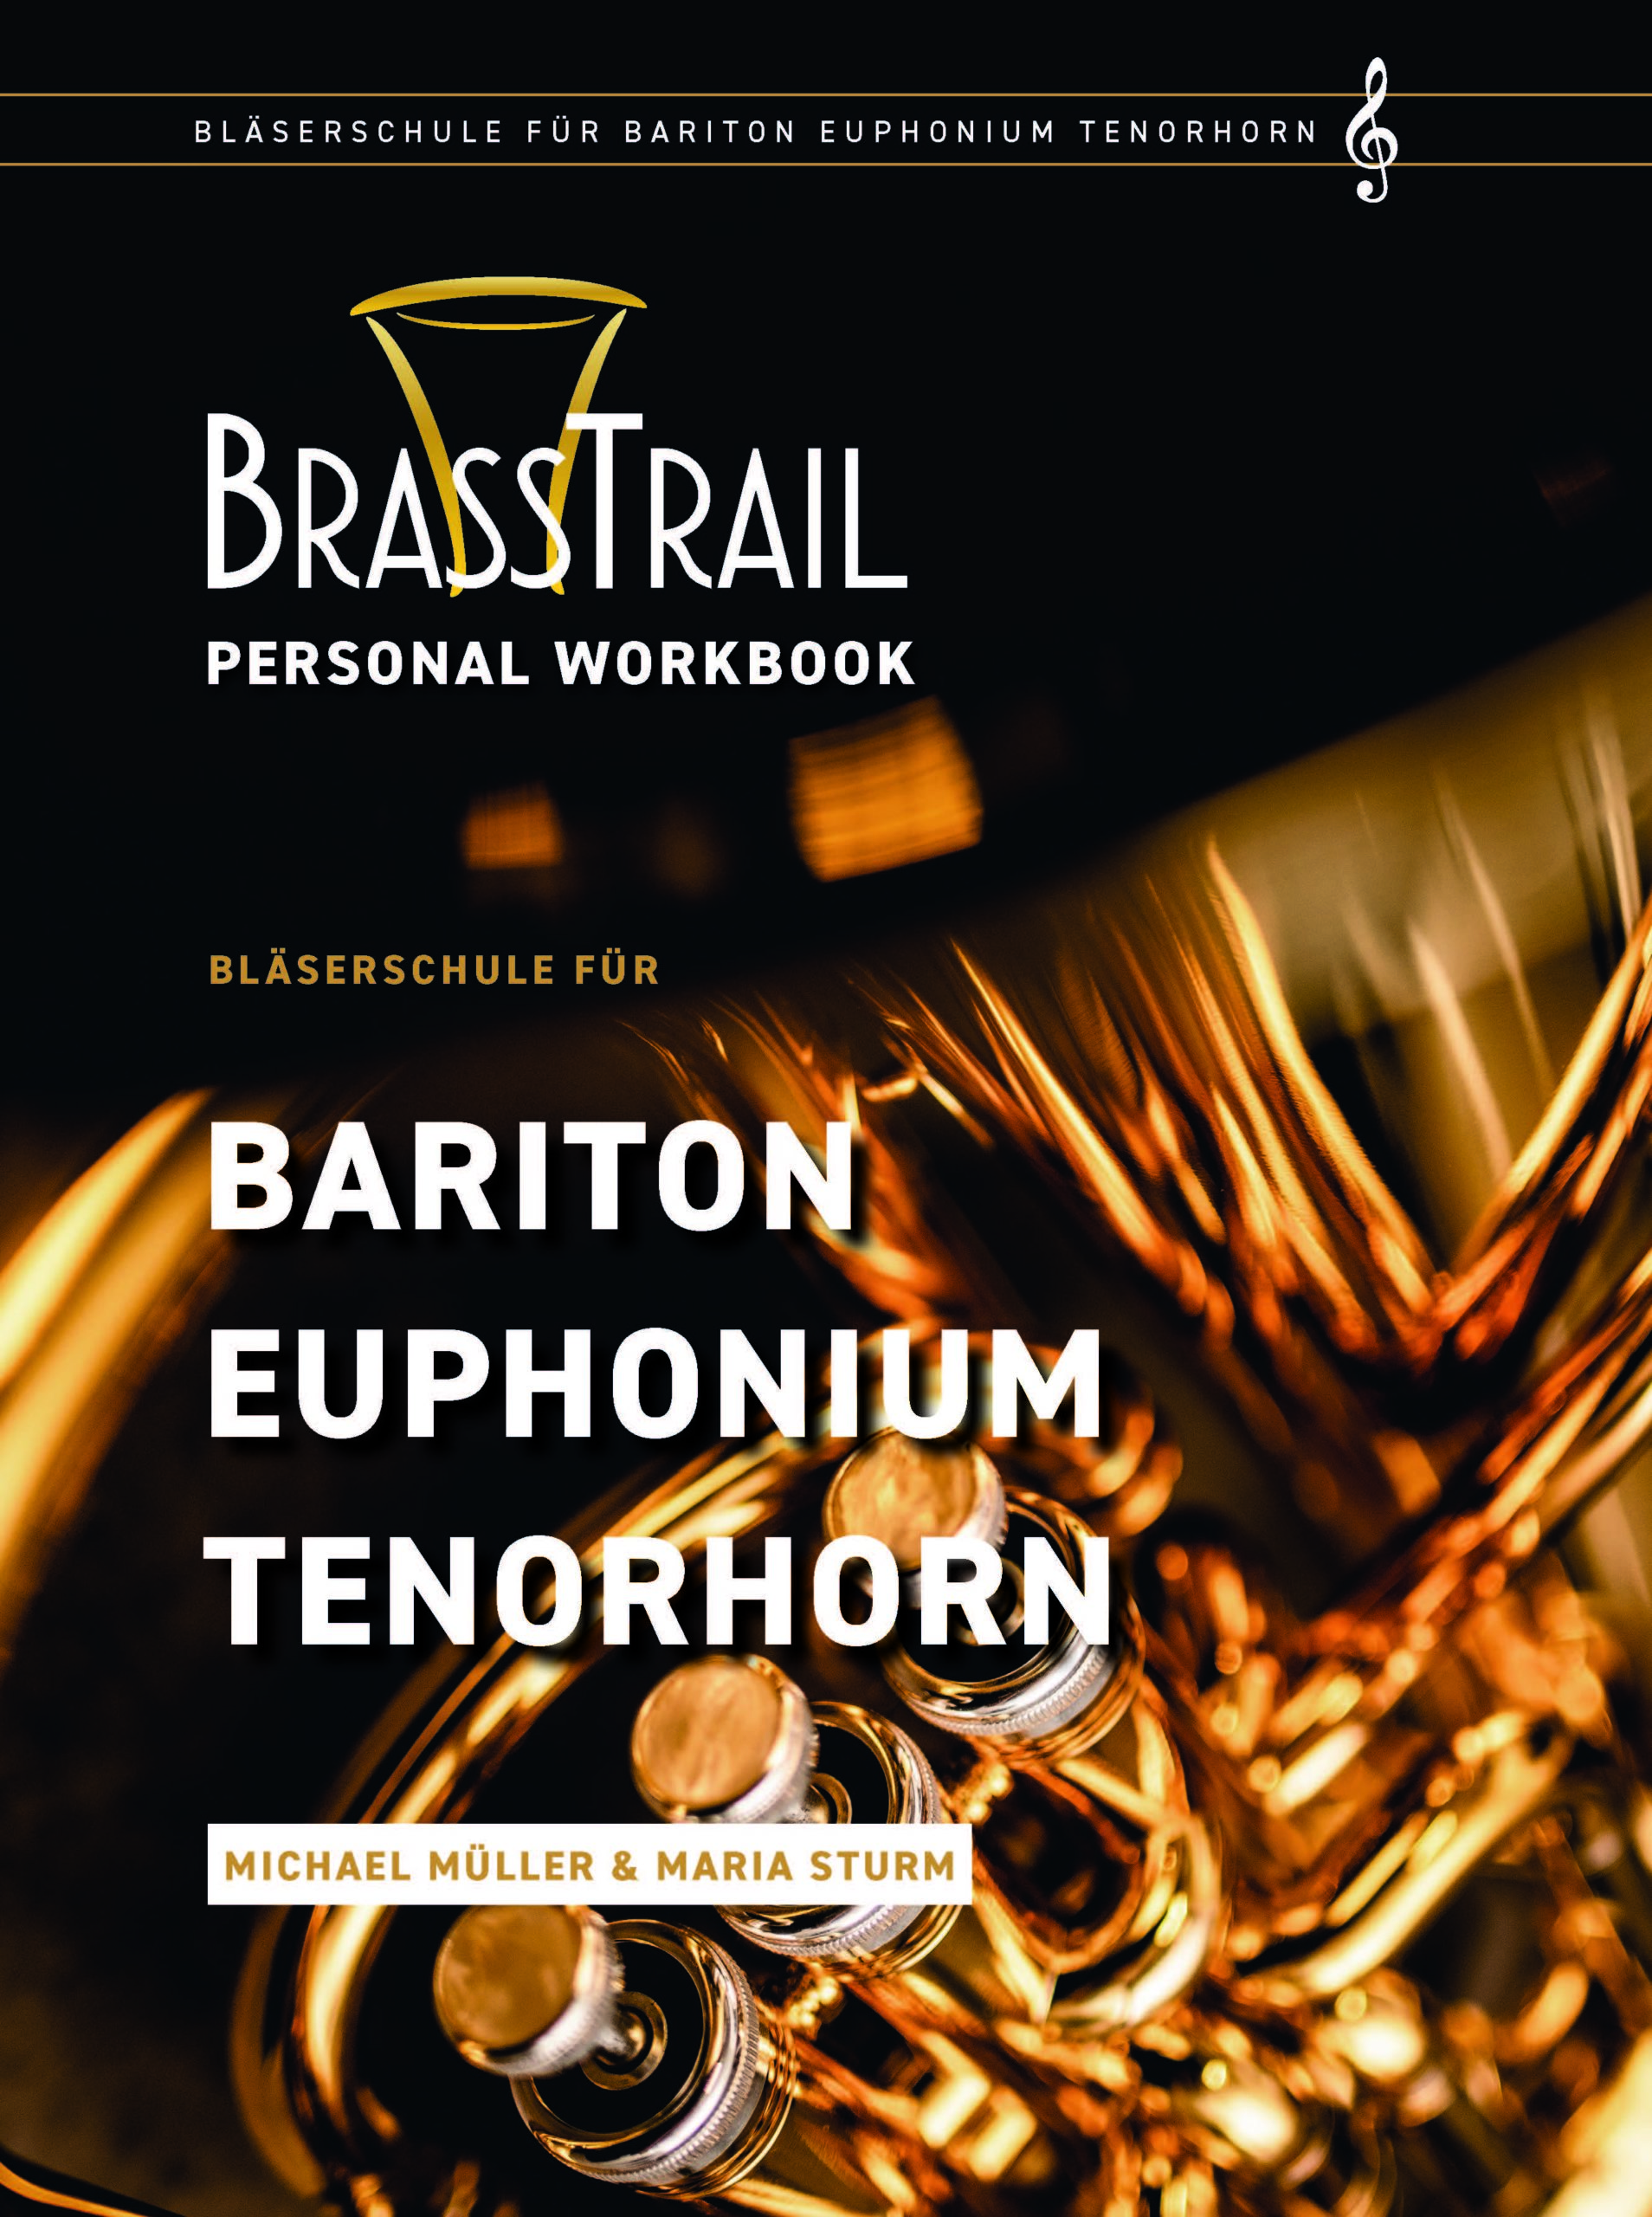 Brass Trail - Method book for Bariton/Euphonium/Tenorhorn - Treble Clef version - Michael Muller and Maria Sturm - NEW!!